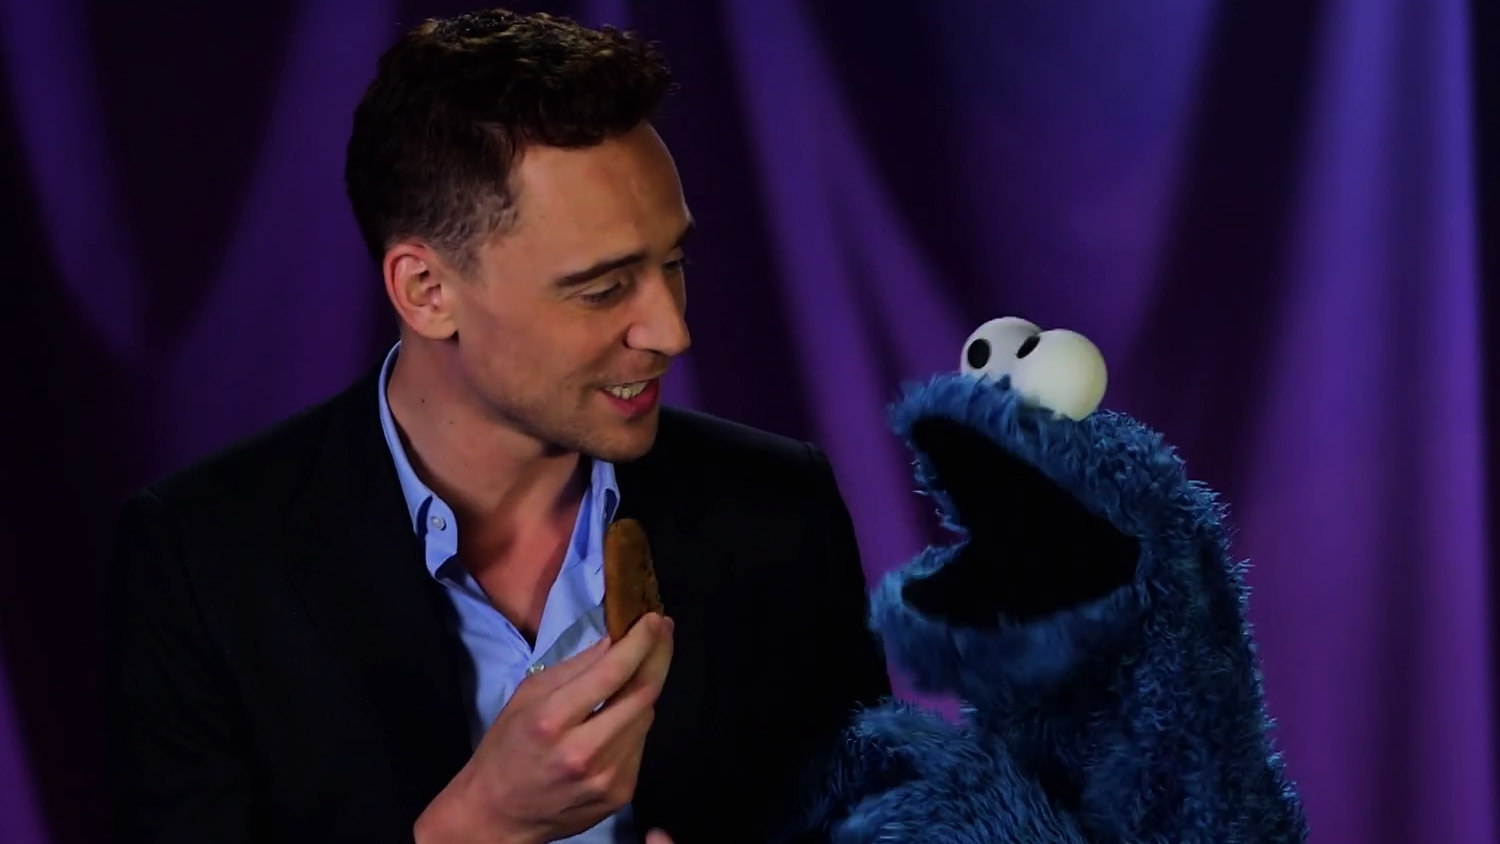 Tom Hiddleston Teaches Cookie Monster a Lesson  artistic, awesome, clever, cool, crazy, funny, random, rocks, silly, sweet